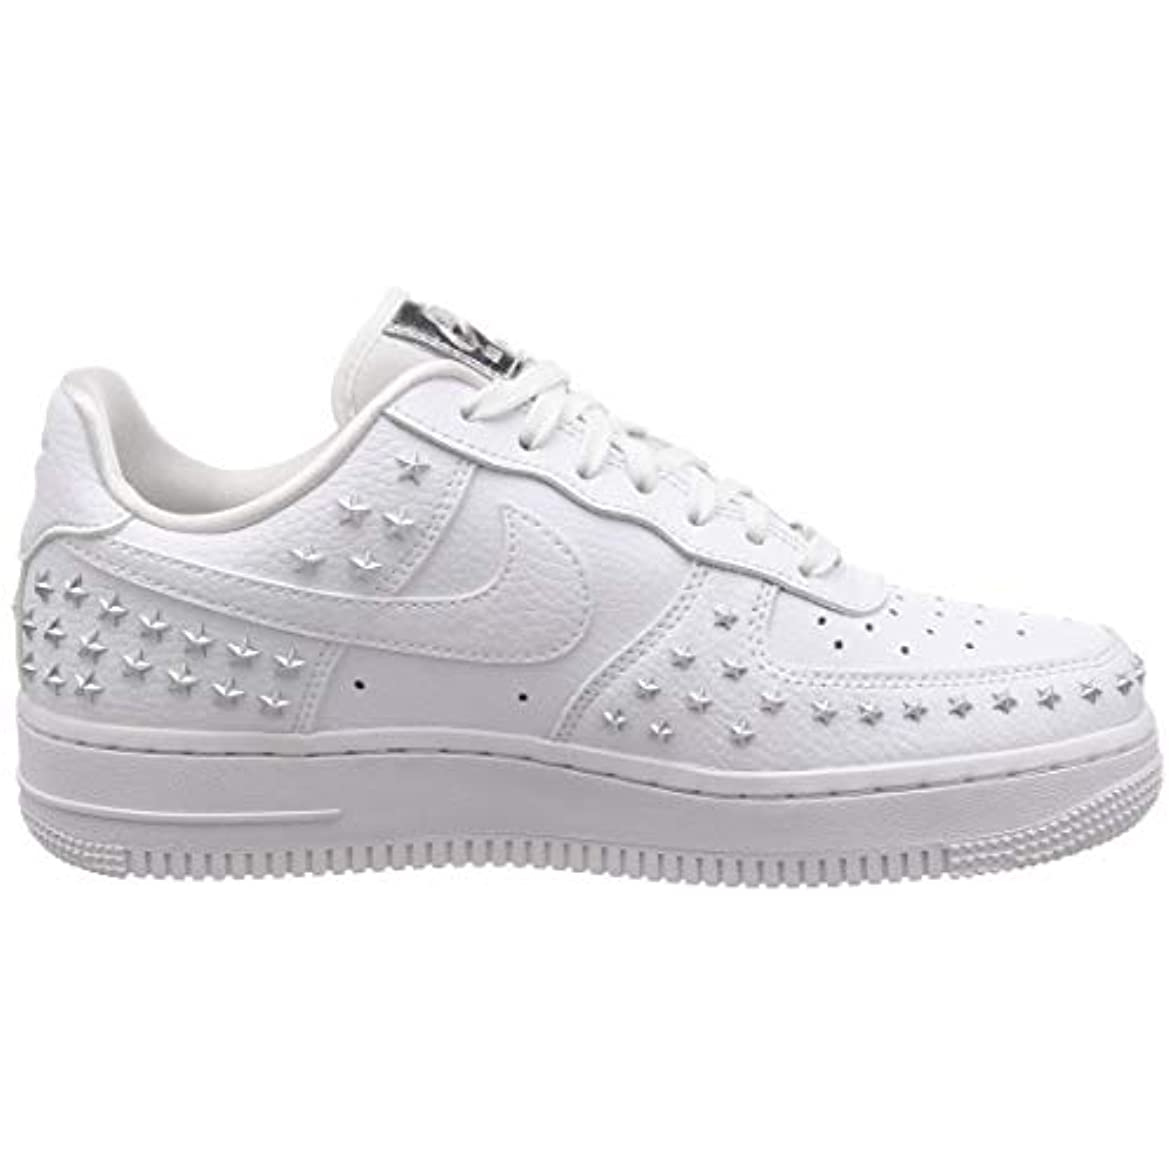 Nike Sneakers Wmns Air Force 1 '07 Xx Bianco Argento Ar0639-100 42 5 - Bianco